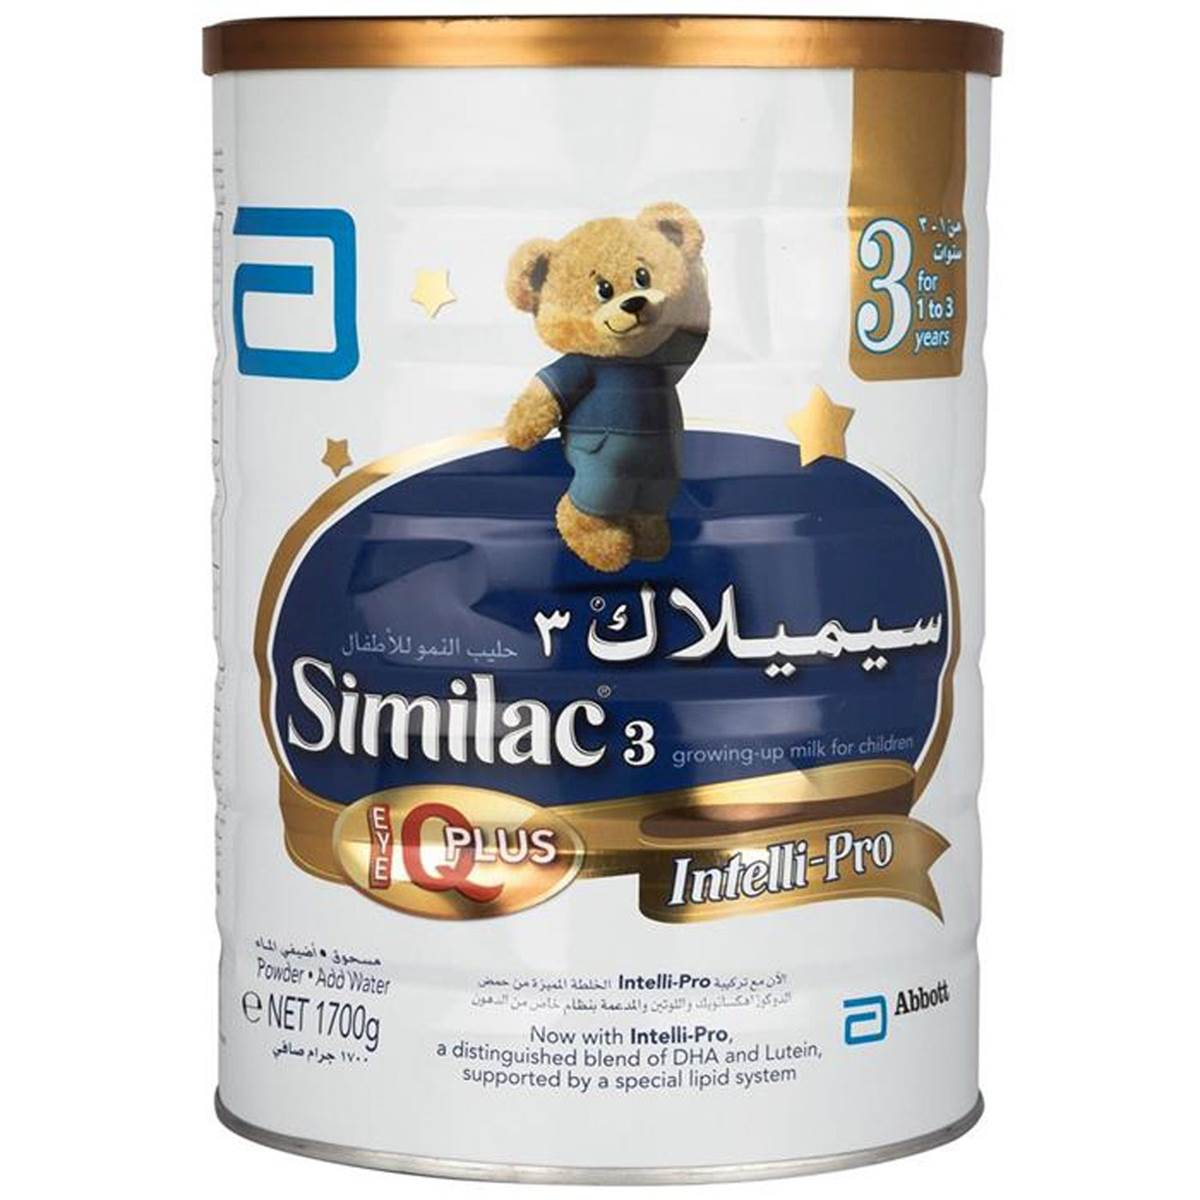 Similac 3 Growing-Up Milk For Children - 400g (Imported)